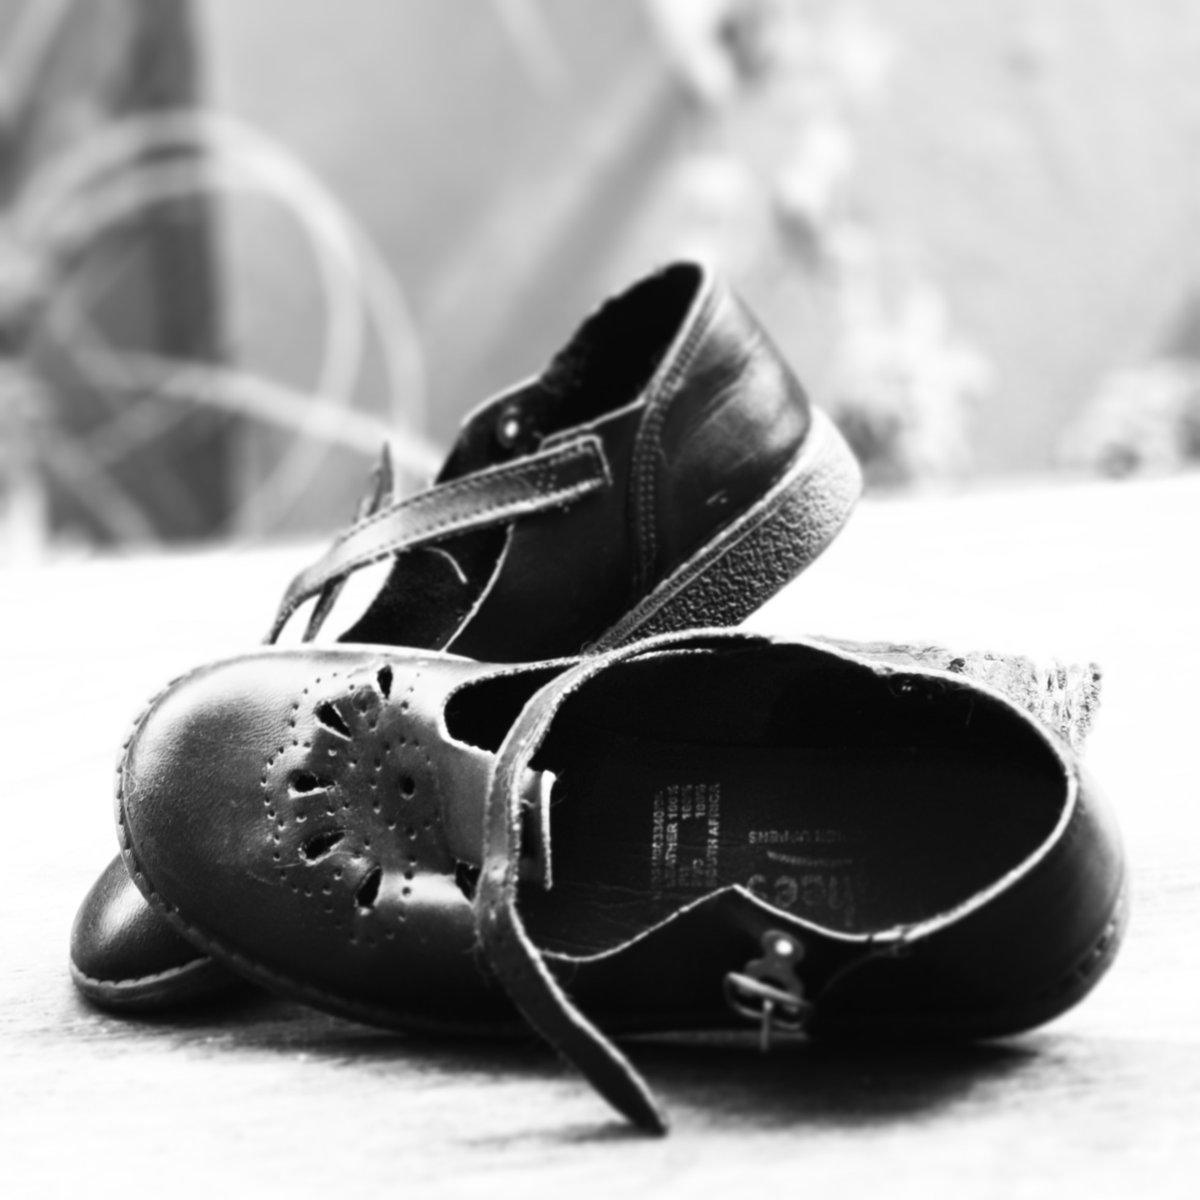 #LockDownSADay1Challenge 'Hoping-to-go-back-to-school-soon' at home shoes...